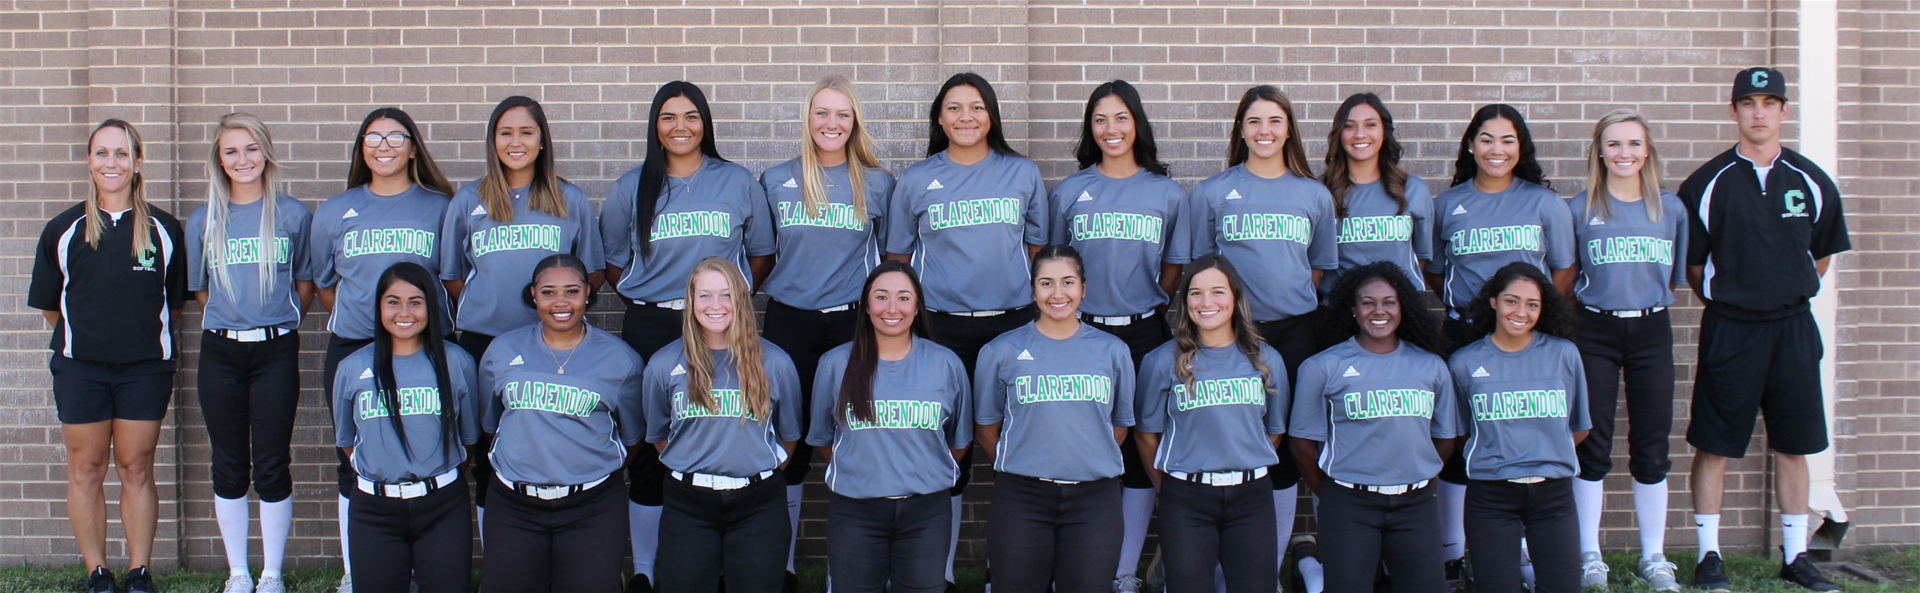 Clarendon College 2019-2020 Softball team